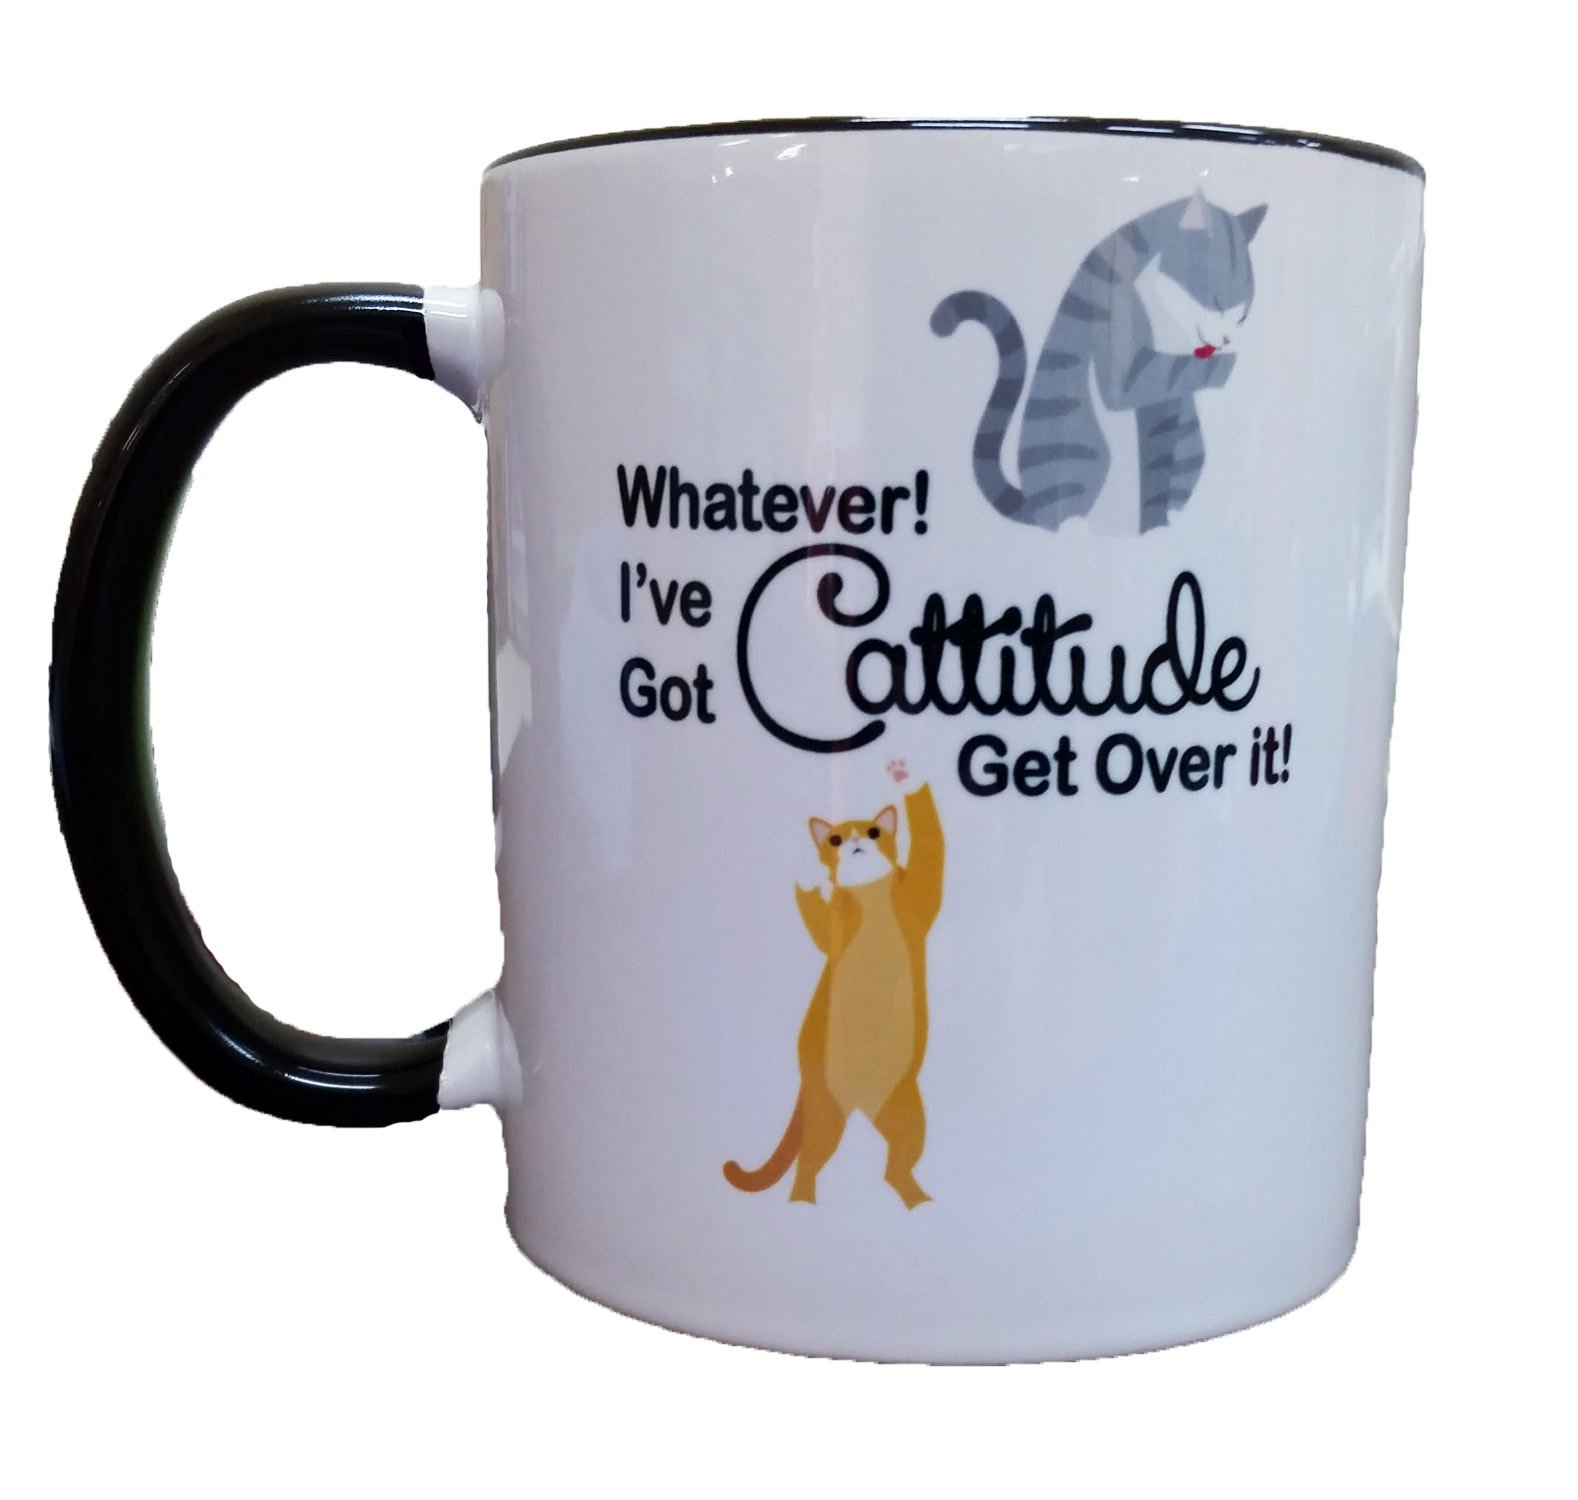 Whatever! I've Got Cattitude Get Over It! Coffee or Tea 11oz Mug - Perfect Gift for Cat and Animal Lovers by Dark Spark Decals (Image #1)